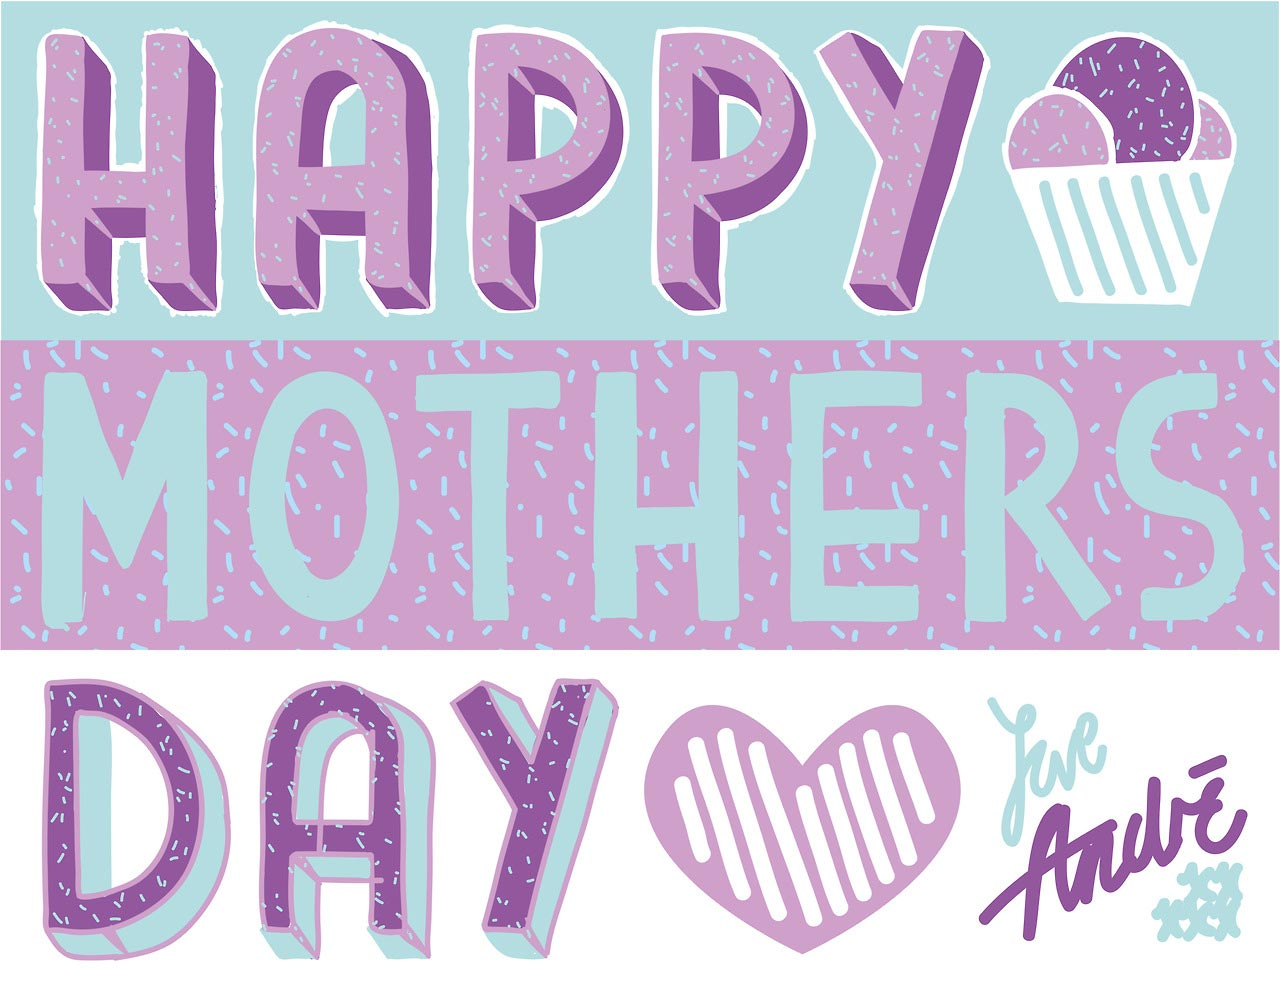 Mothers Day Wallpaper With Quotes Happy Mother S Day 2014 Pictures Hd Wallpapers Quotes